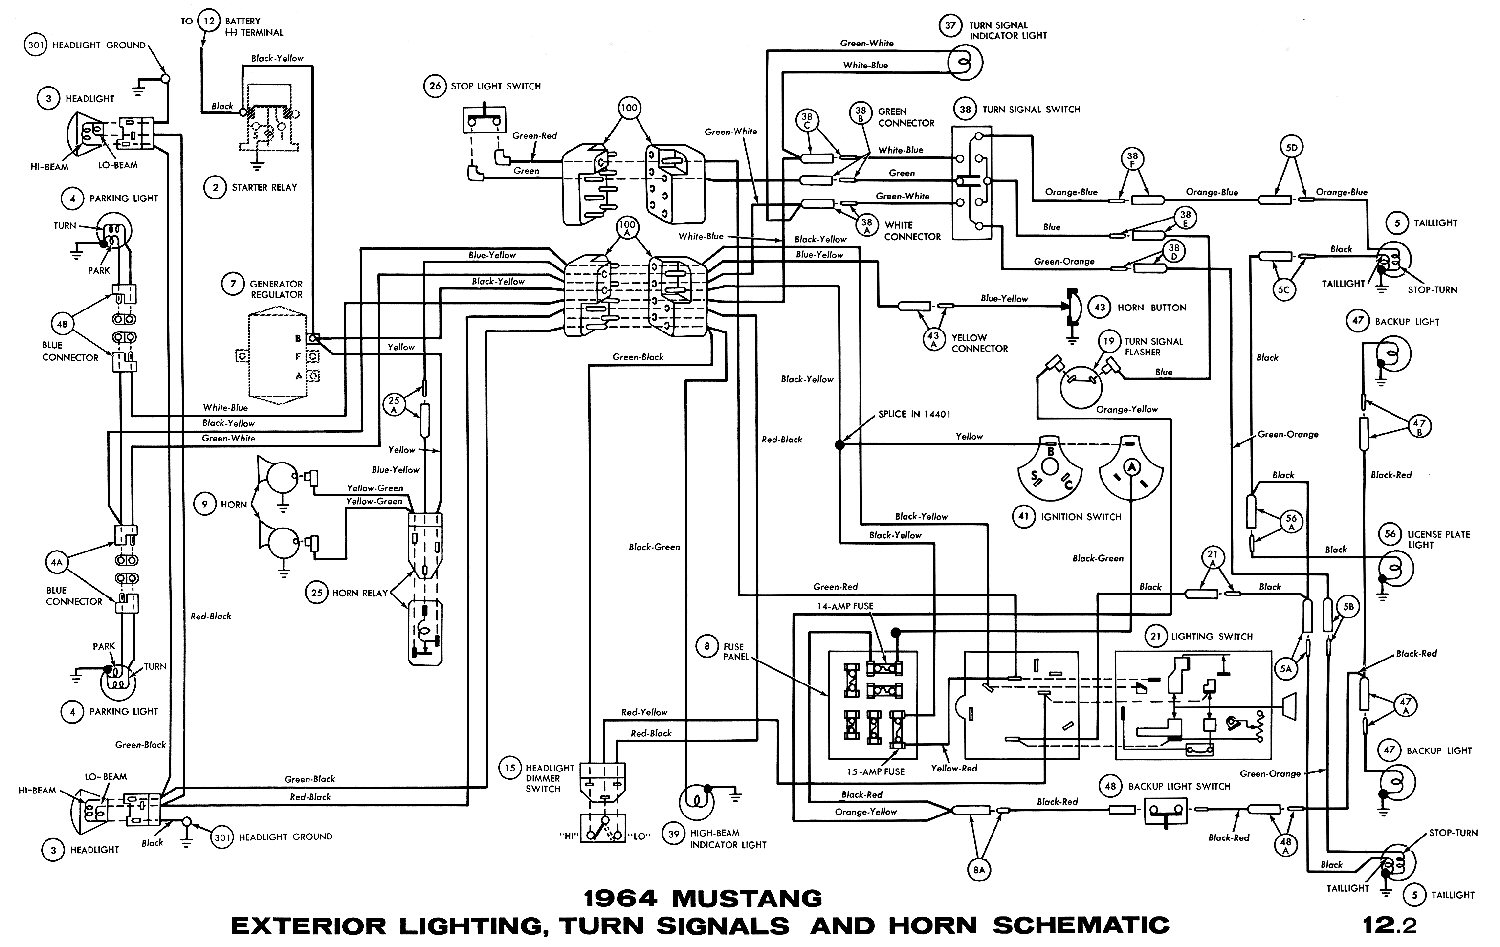 1964i 1964 mustang wiring diagrams average joe restoration 93 mustang turn signal wiring diagram at virtualis.co